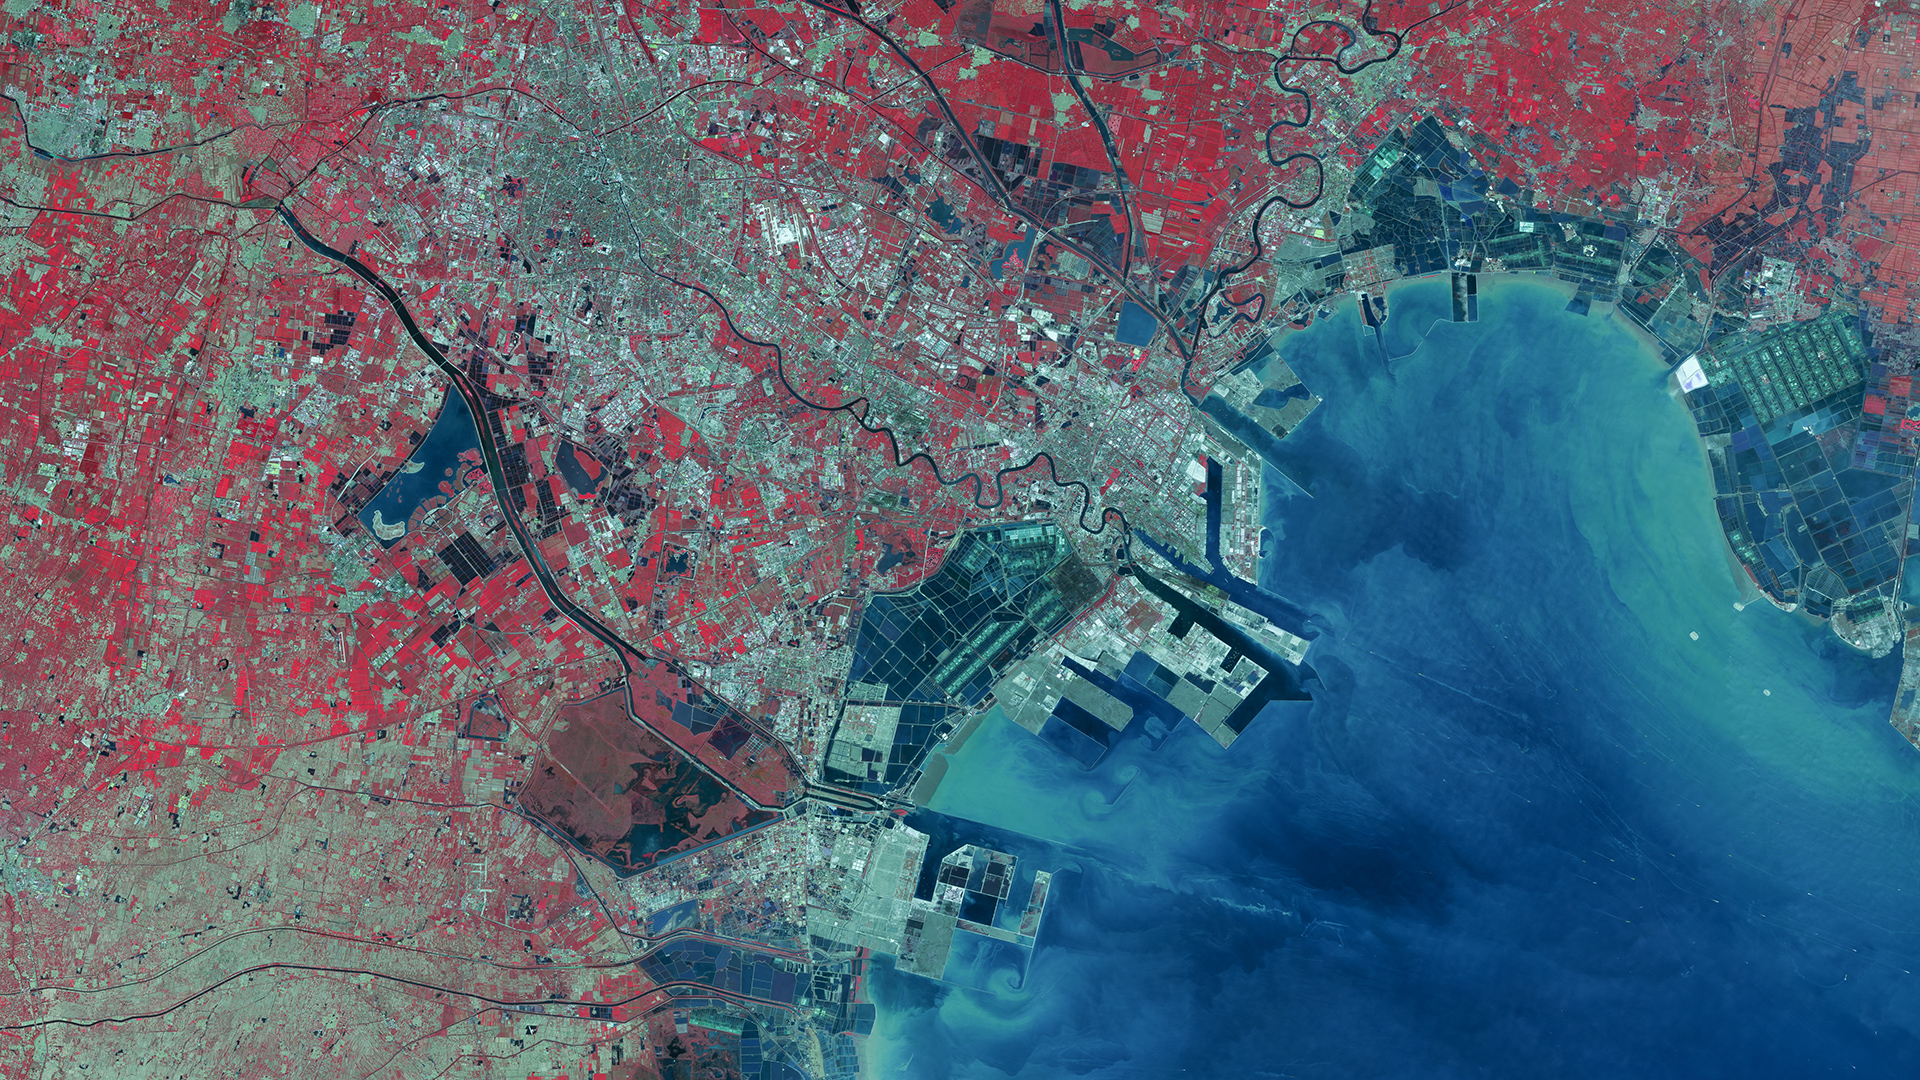 FIGURE 2. Image of harbour in Binhai, Tianjin, China acquired Oct. 2, 2013, courtesy of DMCii.